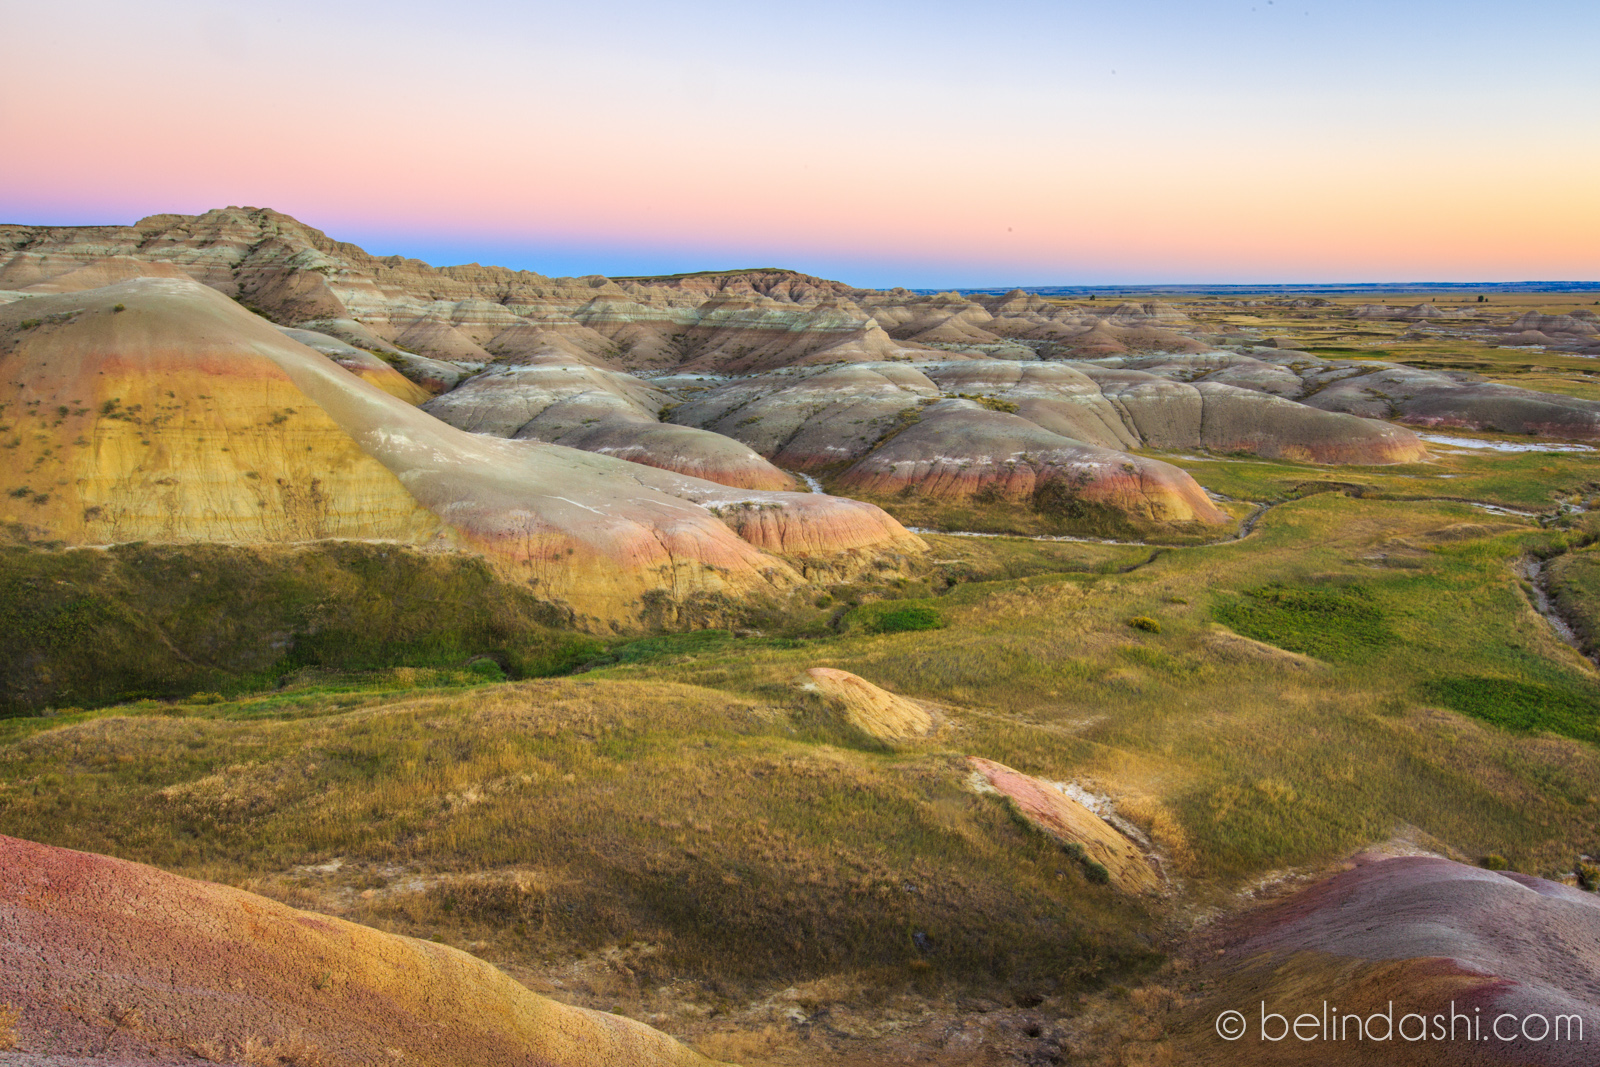 Day 44 - Badlands SD-011-2.jpg